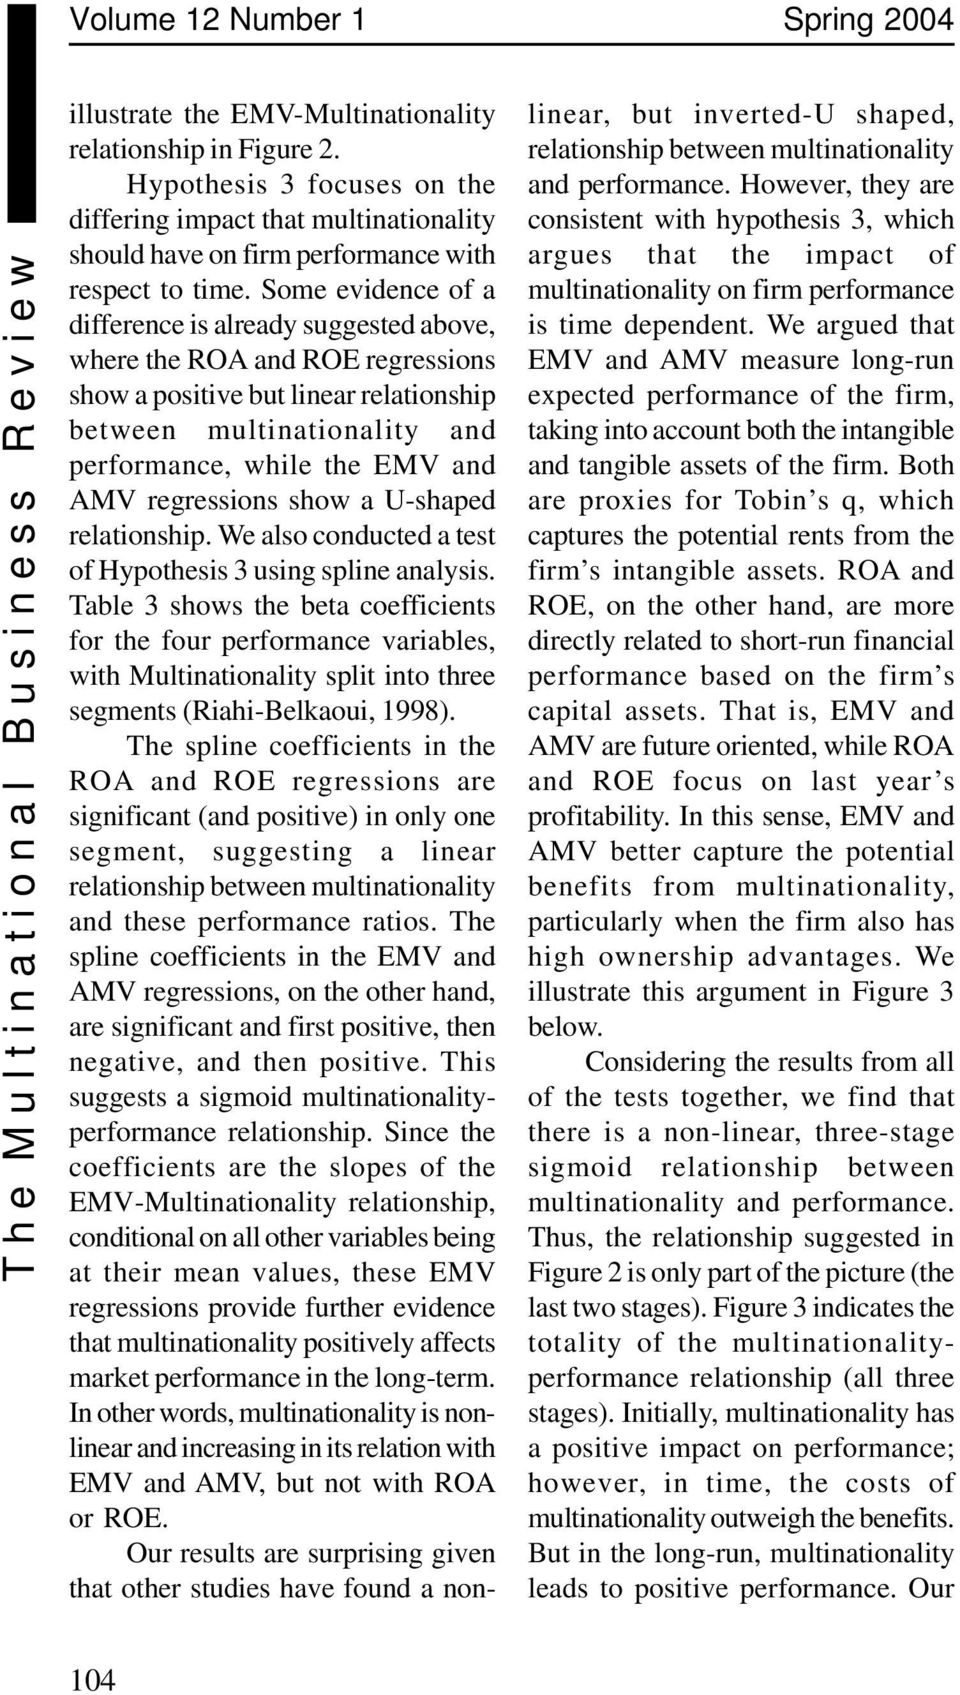 Some evidence of a difference is already suggested above, where the ROA and ROE regressions show a positive but linear relationship between multinationality and performance, while the EMV and AMV